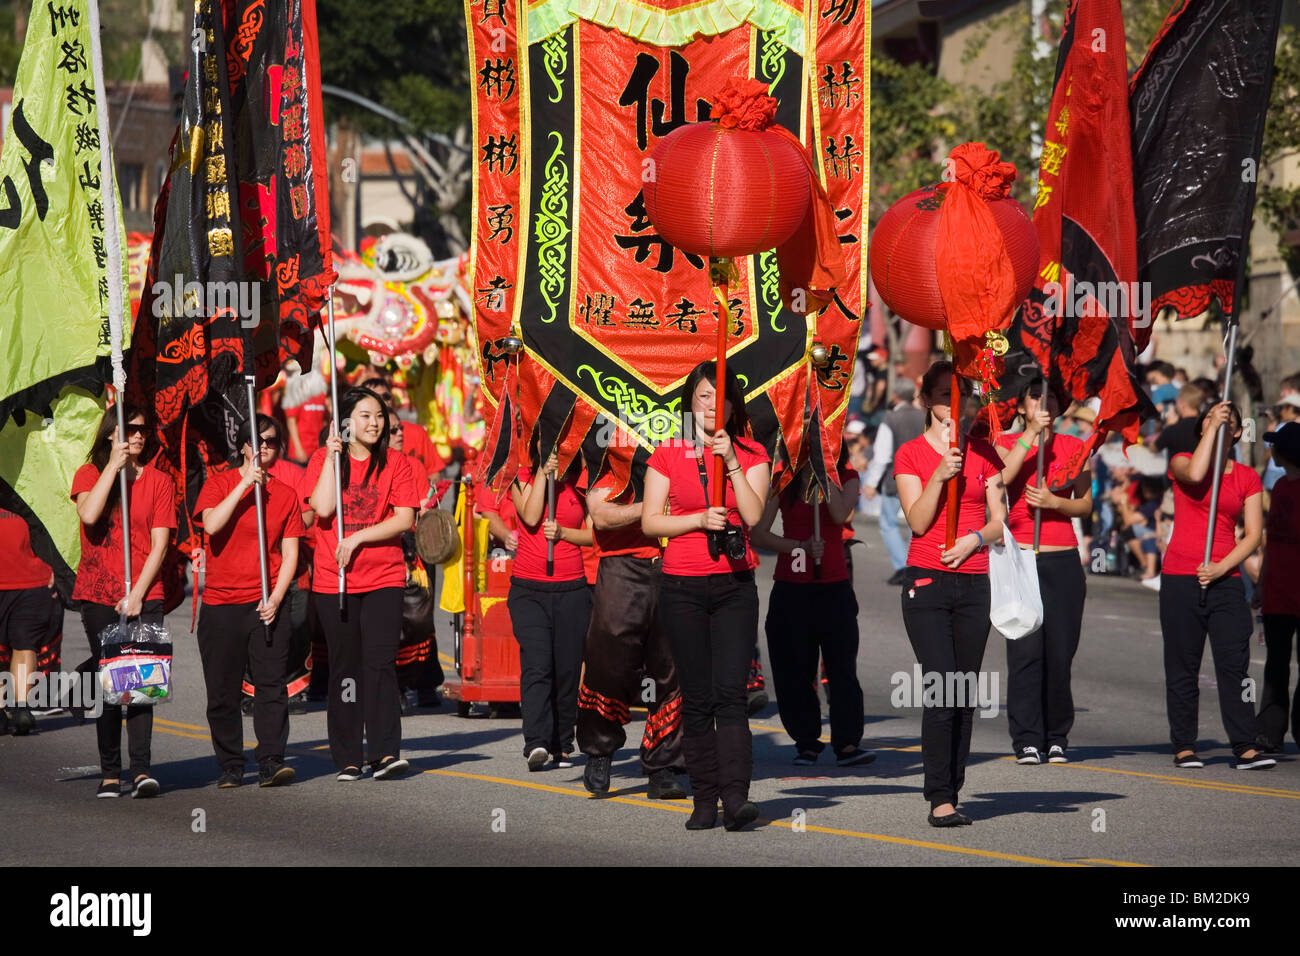 Chinese New Year Banners Stockfotos & Chinese New Year Banners ...